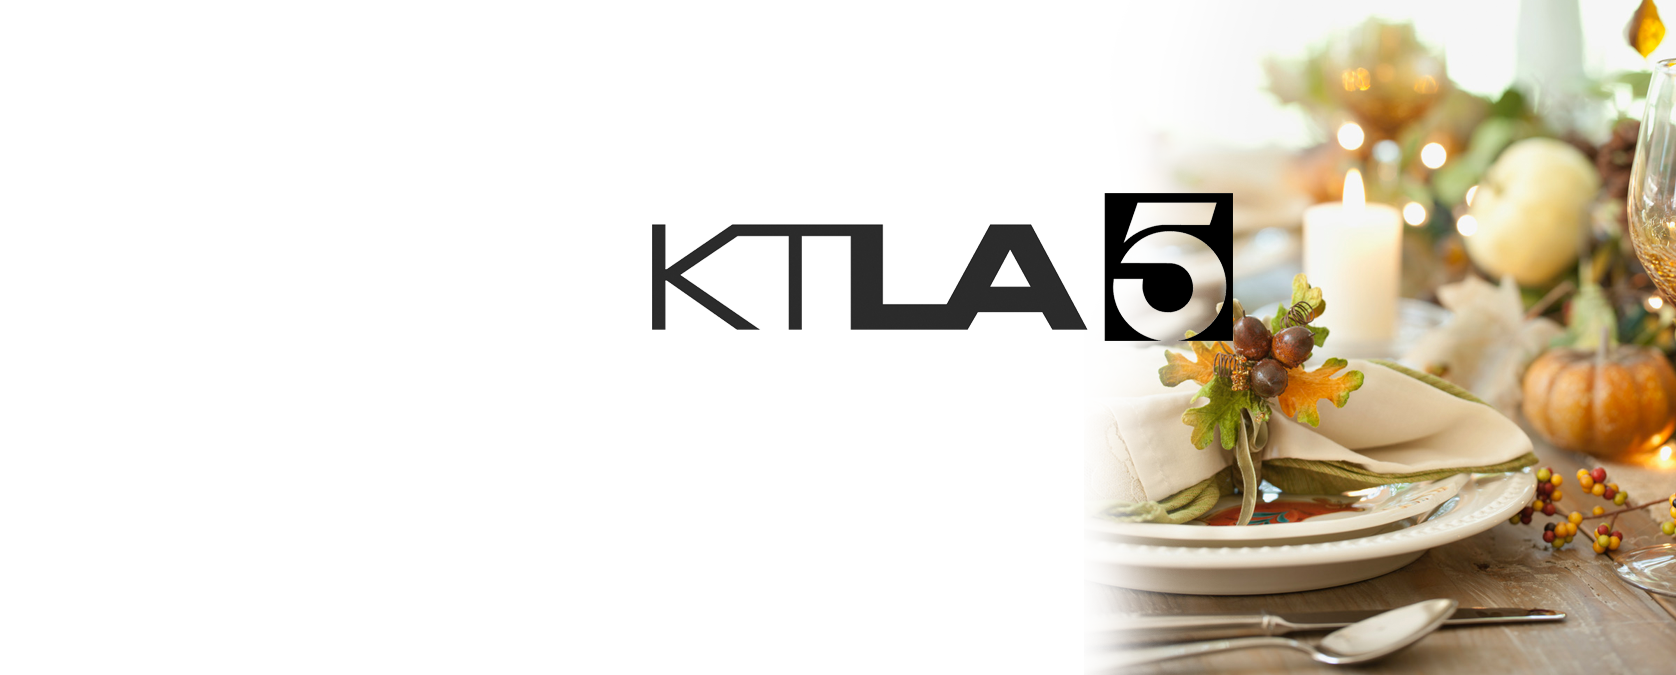 KTLA THANKSGIVING WITH CHEF JAMIE GWEN